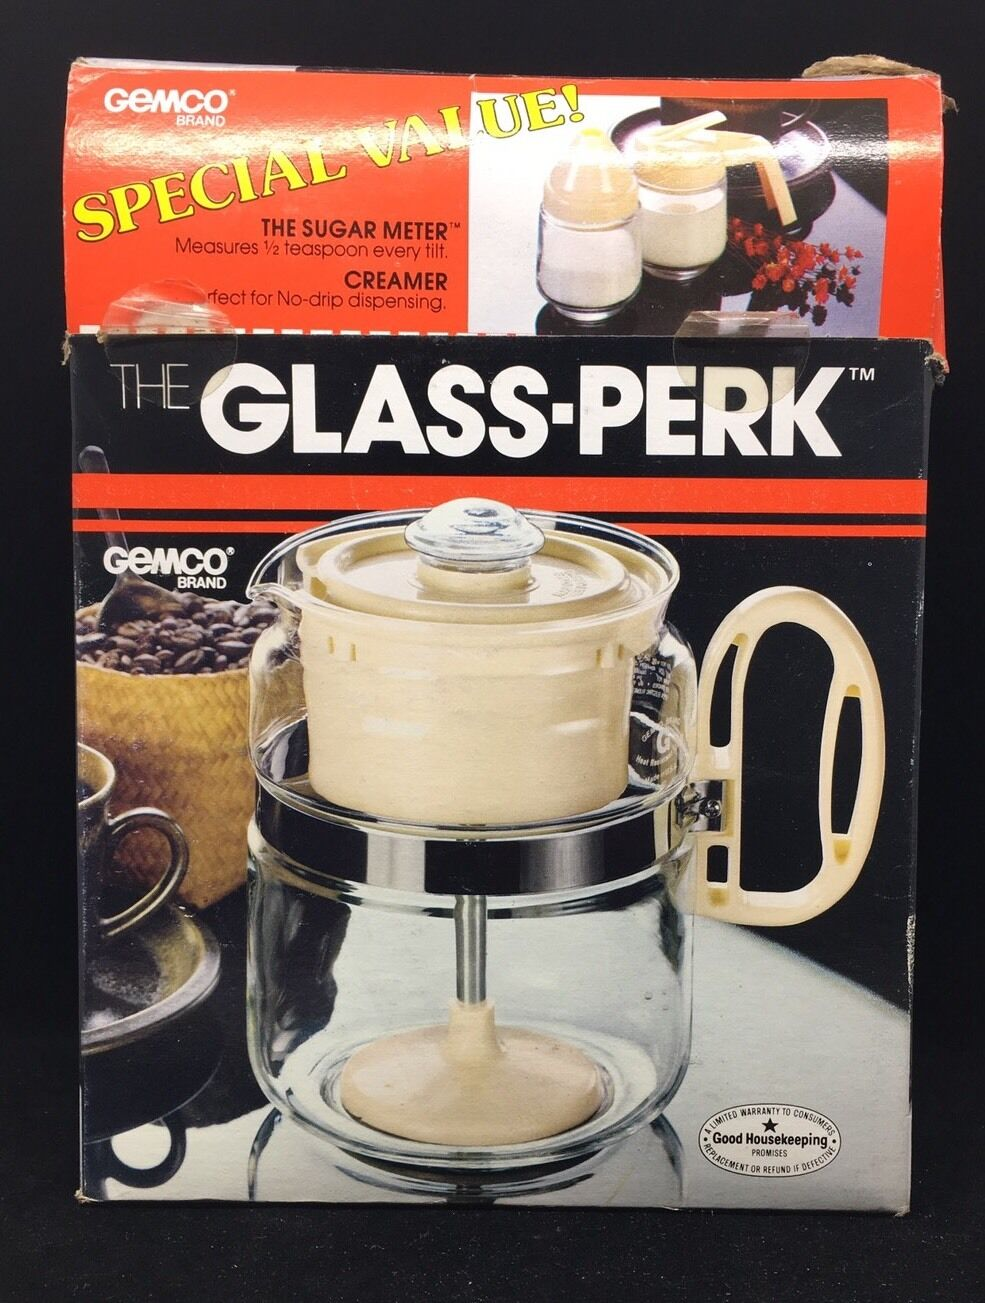 NEW Gemco The Glass Perk Coffee Pot Percolator w  creamer sugar Brown 4-8 Cups